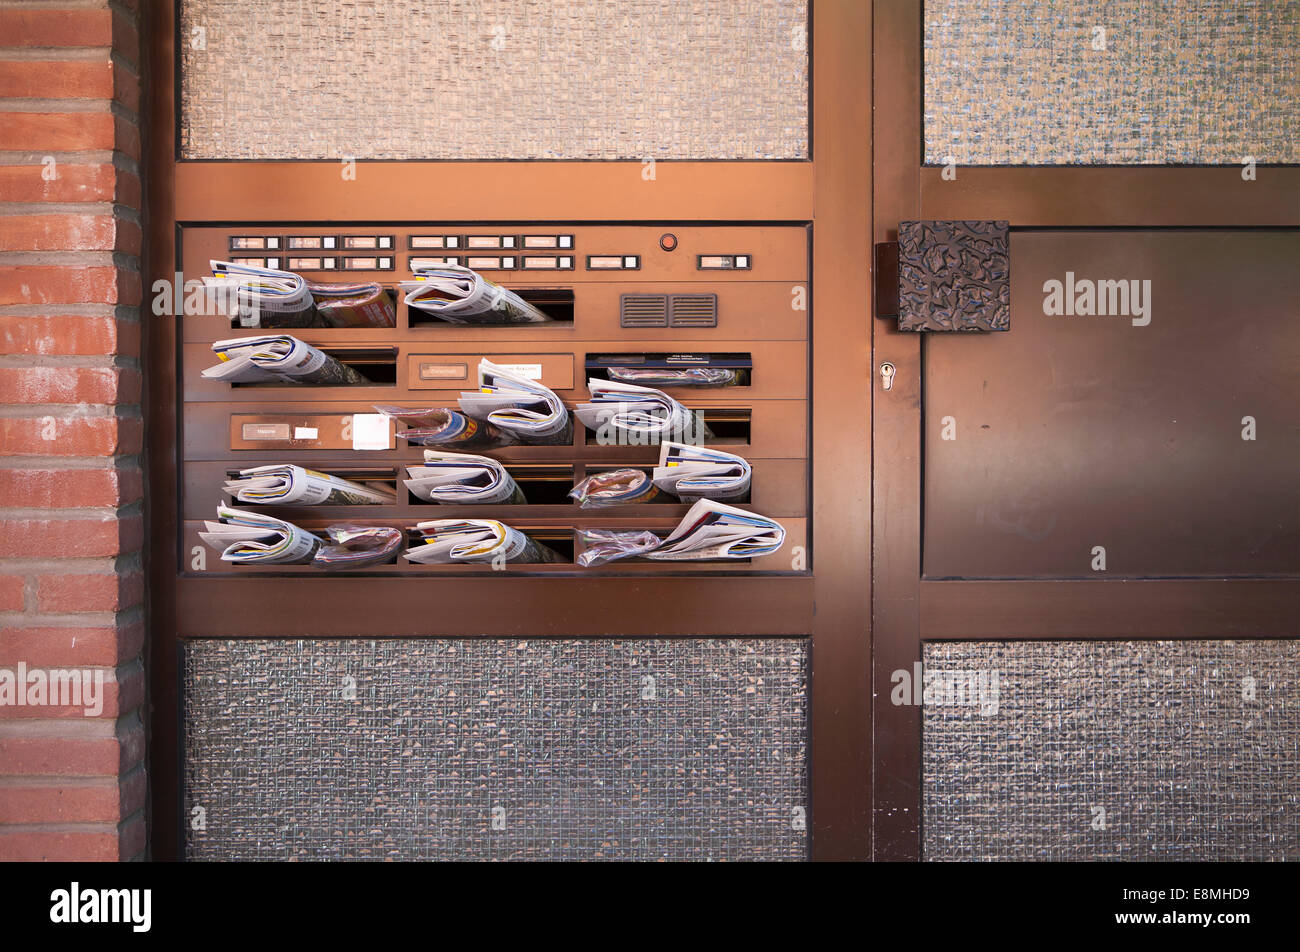 Advertising in stuffed mailboxes, Linden, Hanover, Lower Saxony, Germany, Europe, - Stock Image